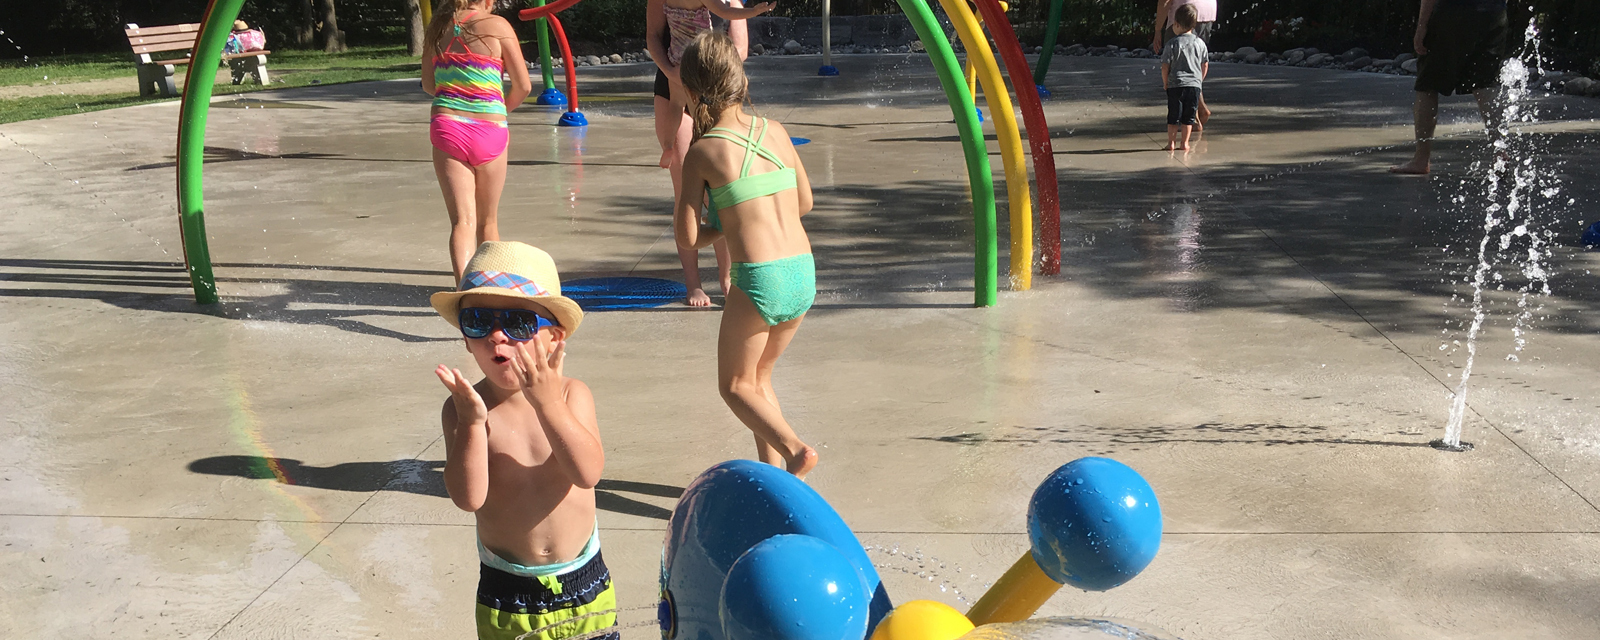 Splash pad in Port Elgin, Ontario